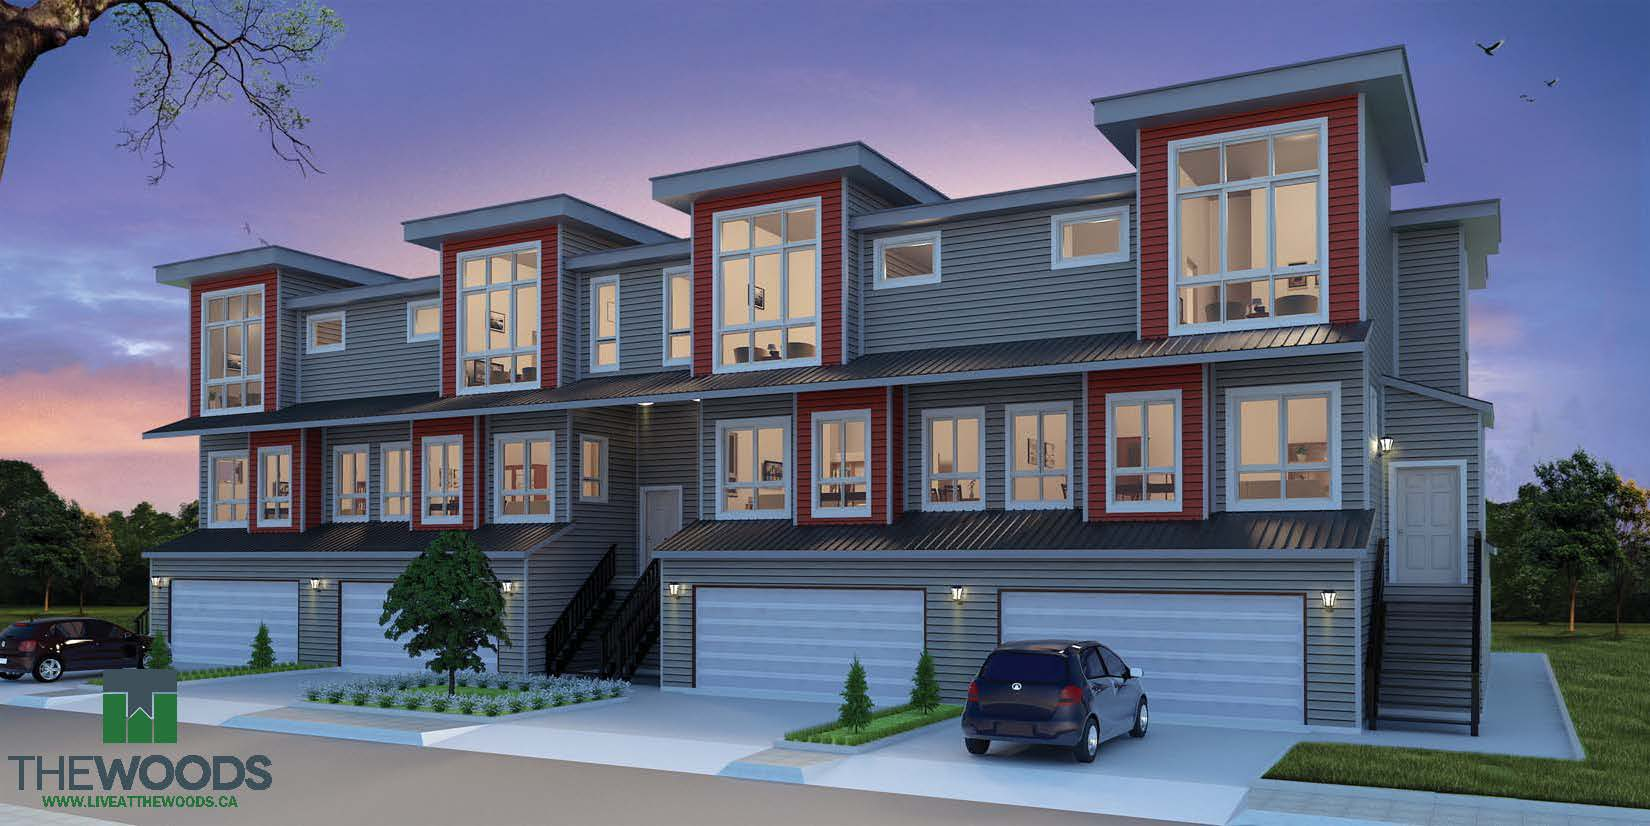 The Woods Town Homes front elevations branded - Copy.jpg